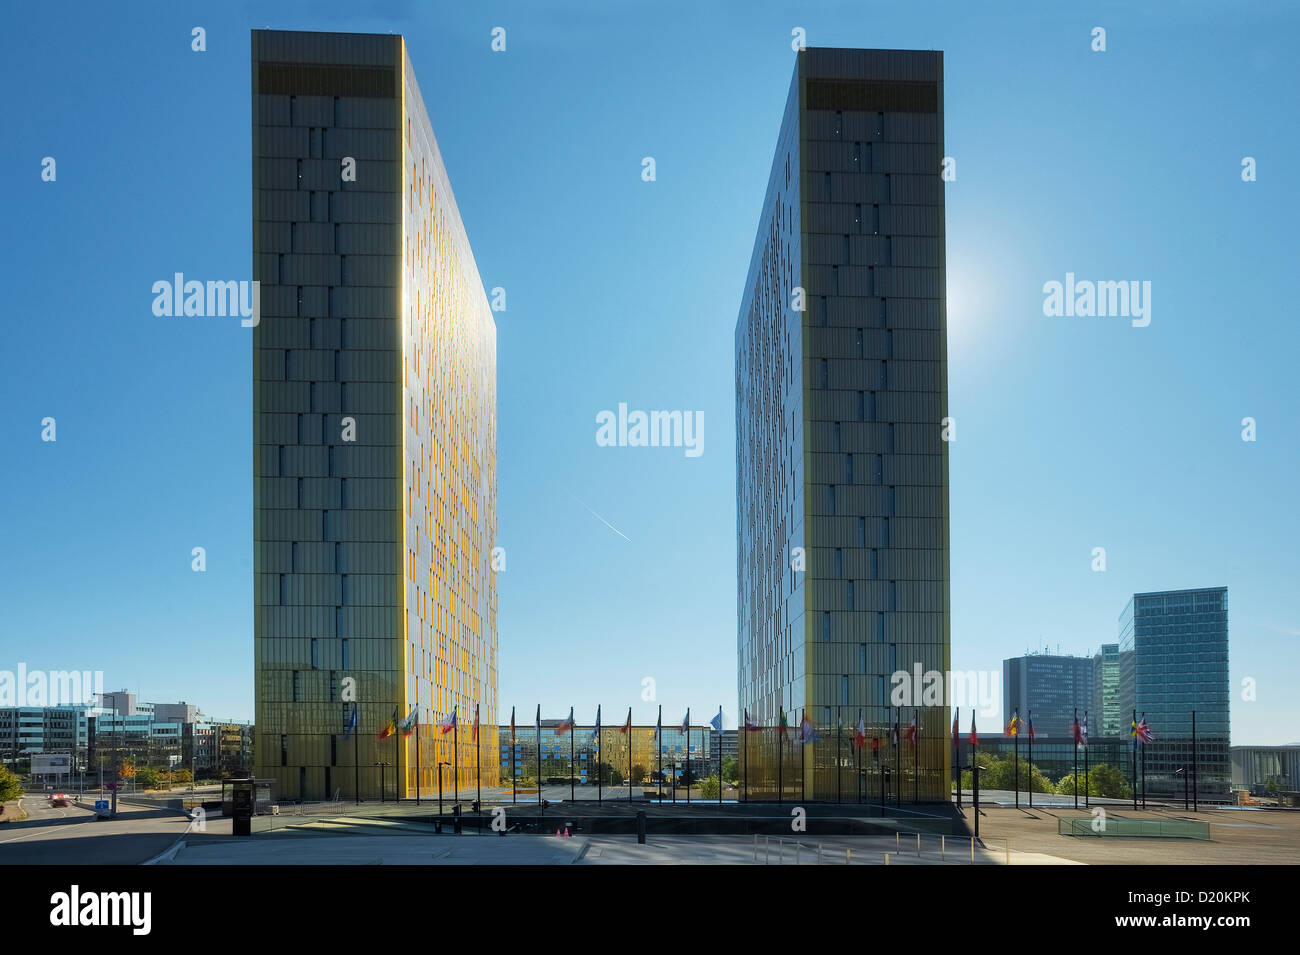 European court of justice at Kirchberg, Luxemburg, Luxembourg, Europe - Stock Image